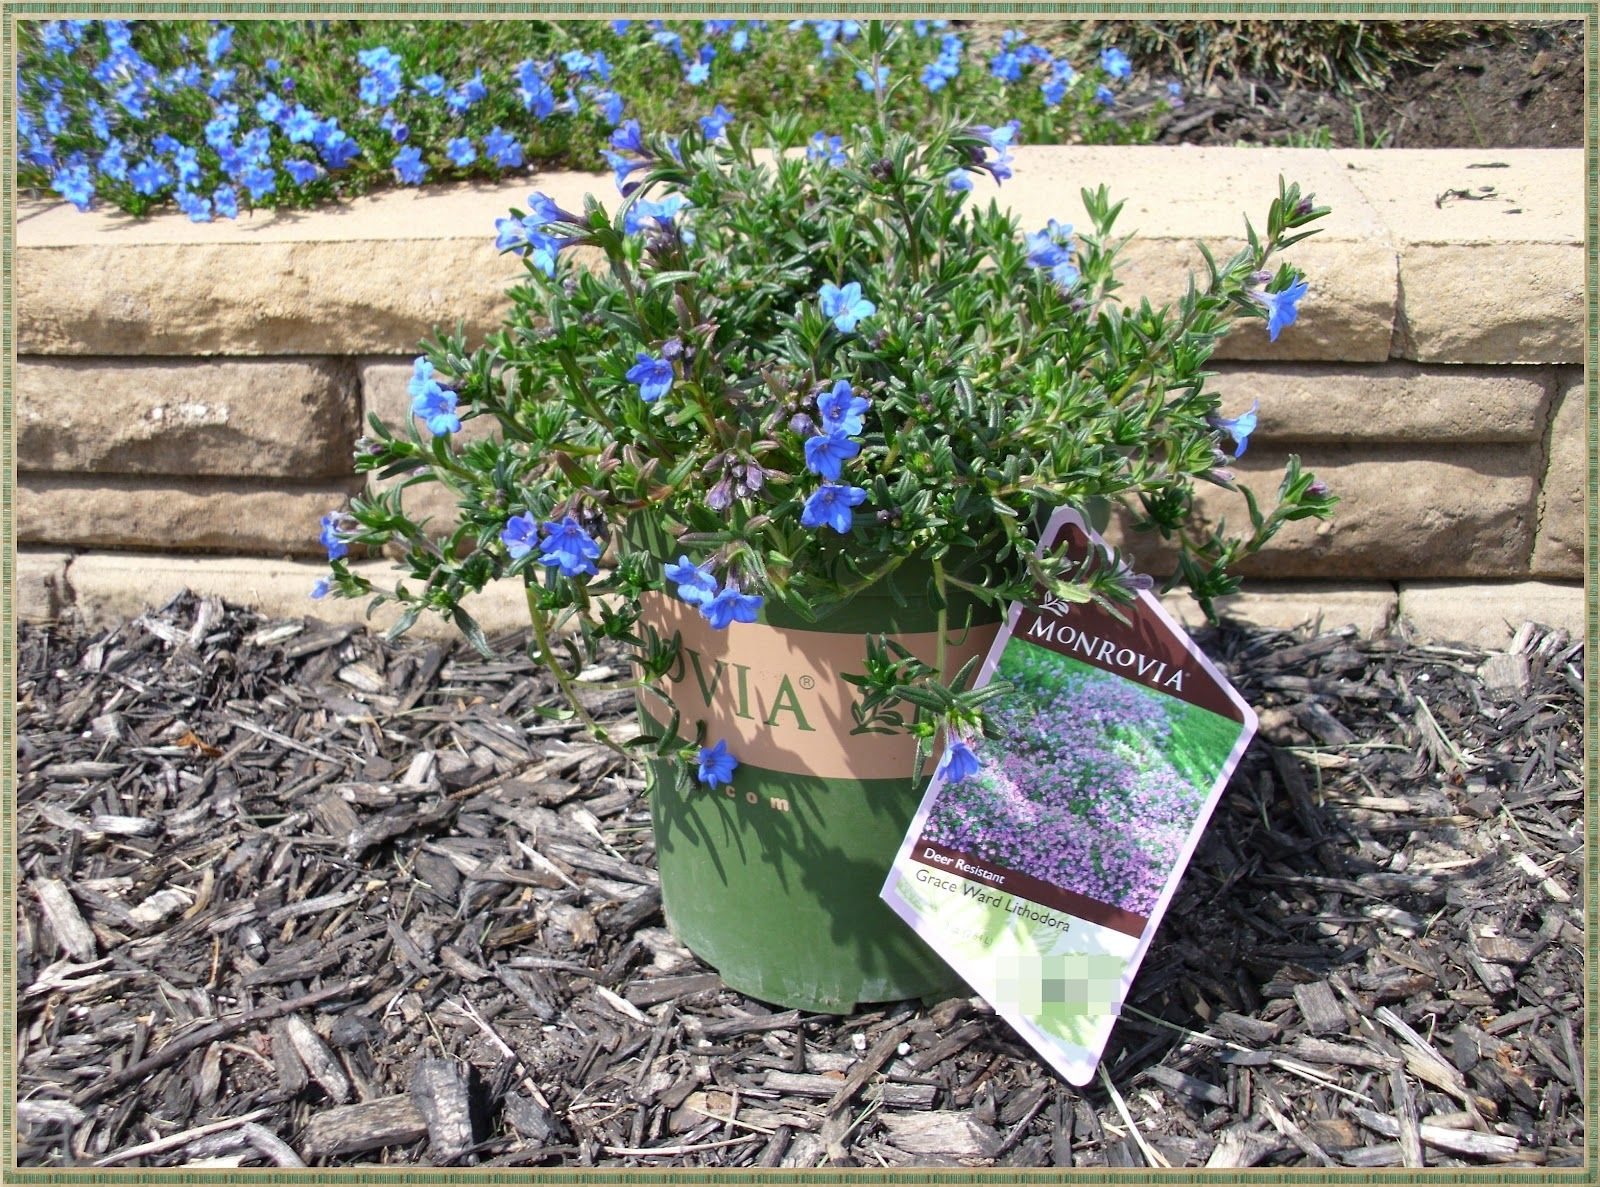 Lithodora evergreen perennial with electric blue flowers garden lithodora evergreen perennial with electric blue flowers izmirmasajfo